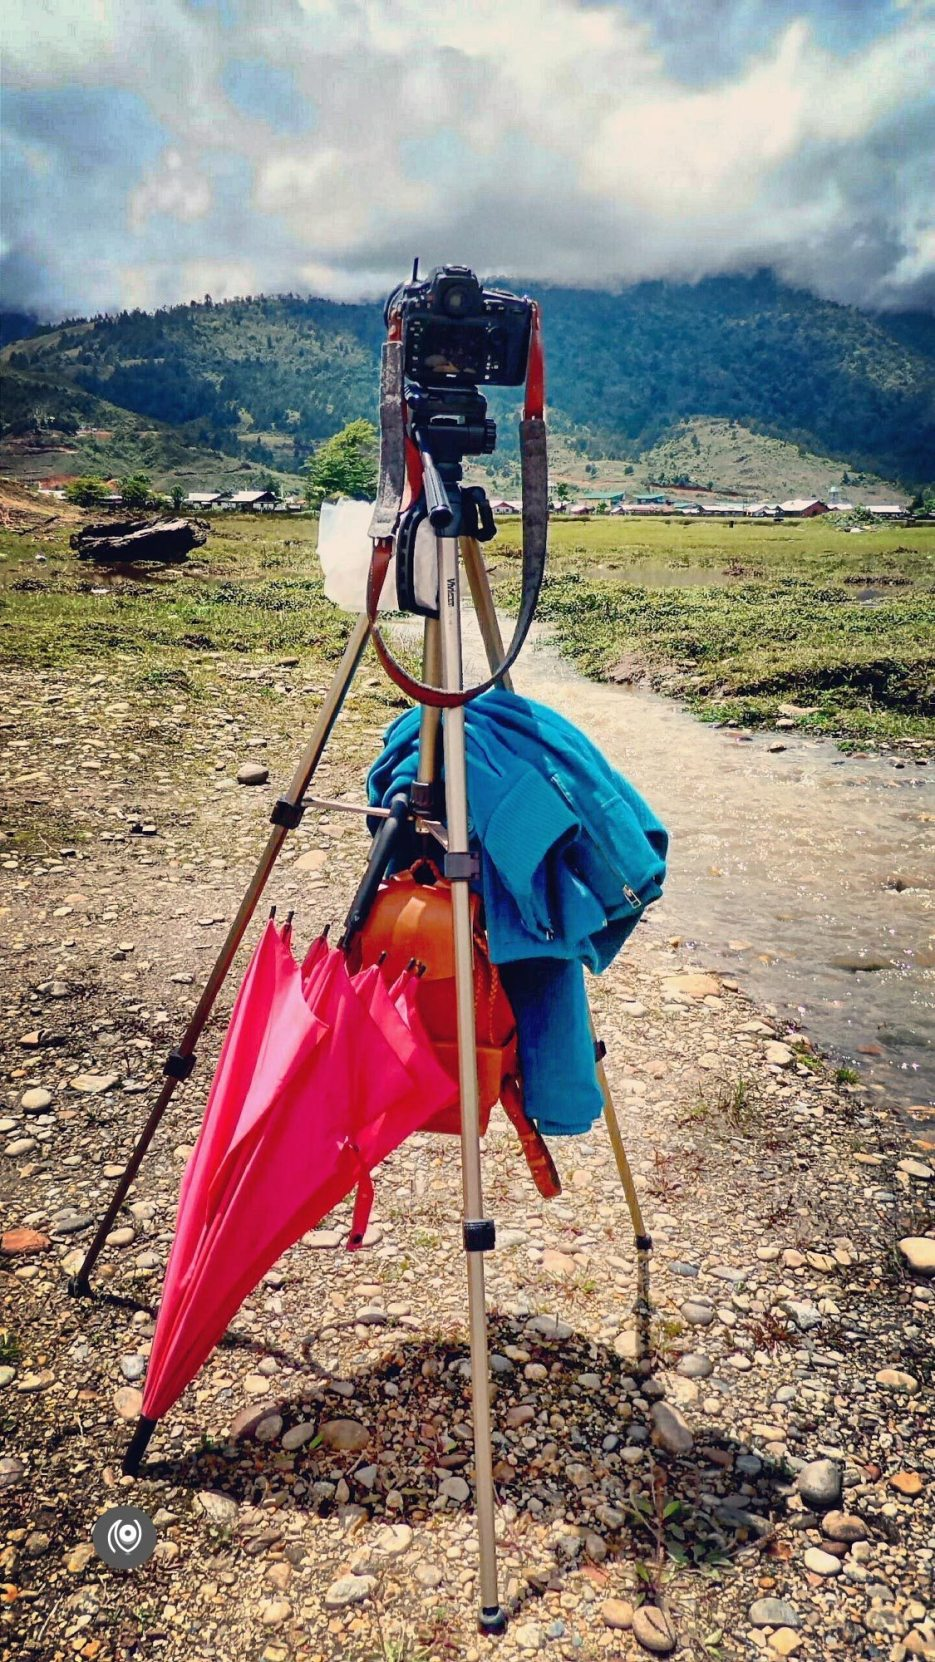 Timelapse Photography, Cloudy, Sunny, River, Yargap Chu, Stray Dogs, Tripod, Menchukha, Menchukha Valley, Menchuka, Mechuka, Arunachal Pradesh, Travel Photographer, Travel Blogger, Luxury Photographer, Luxury Blogger, EyesForDestinations, EyesForArunachal, #EyesForDestinations, #EyesForArunachal